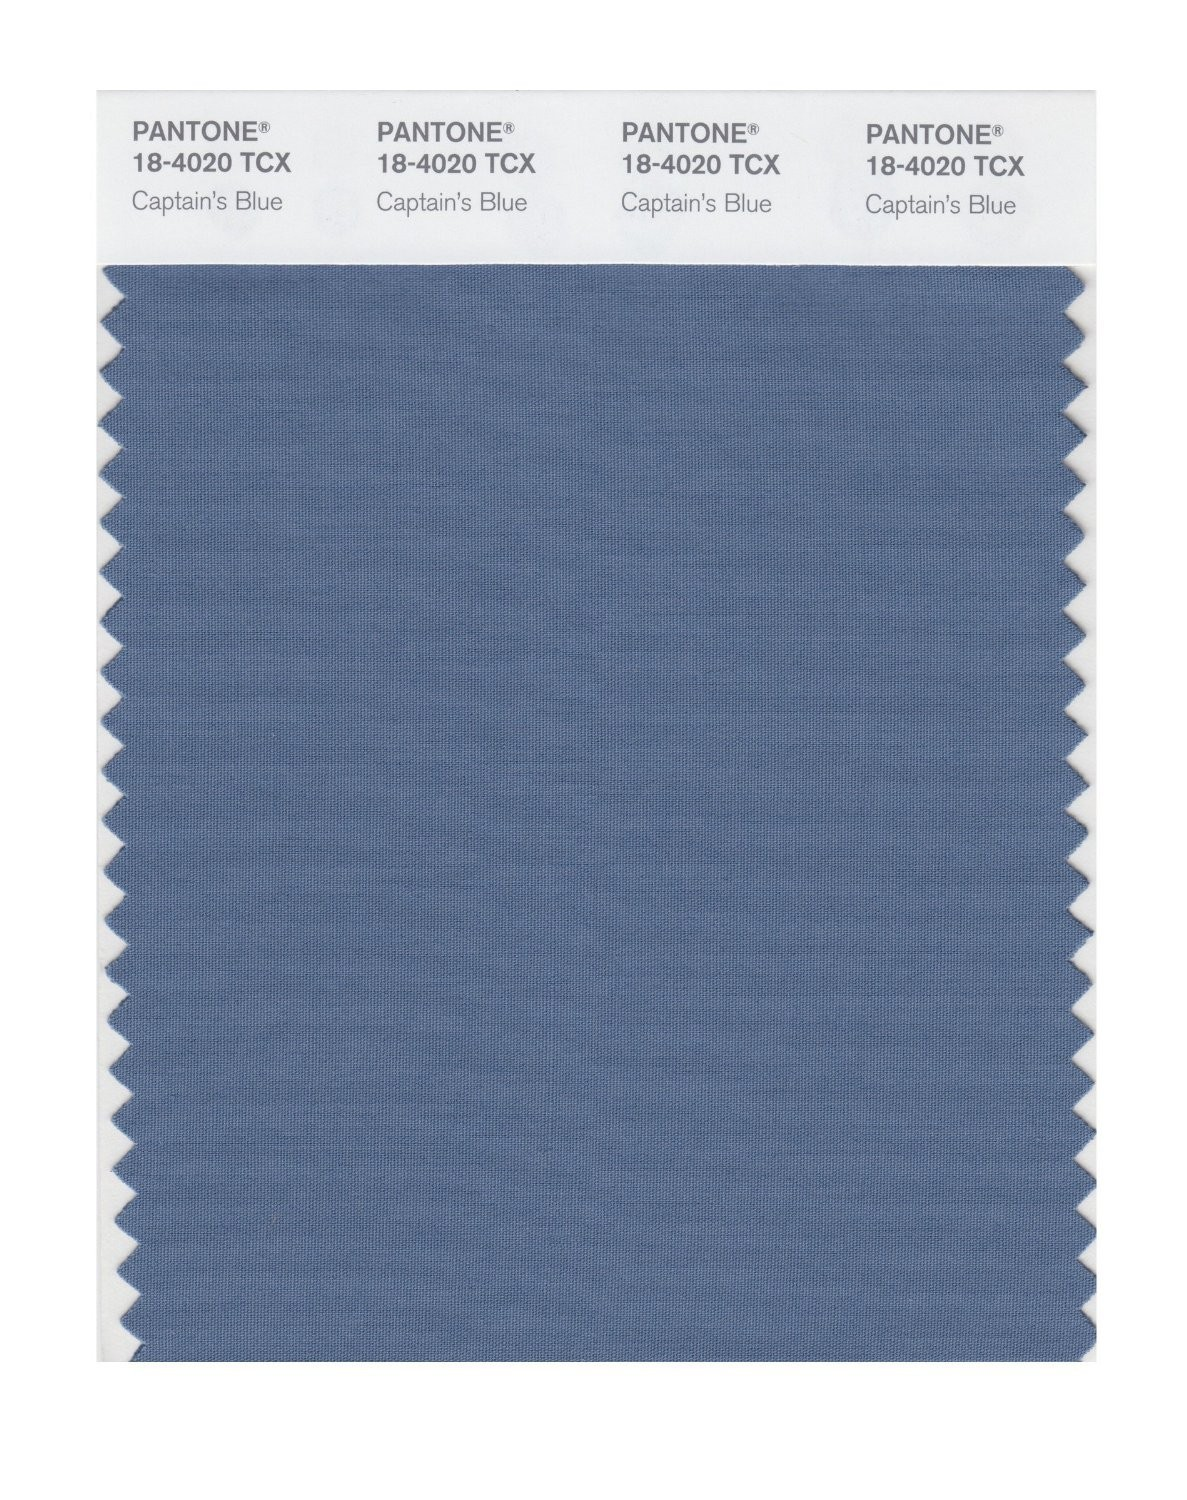 Pantone 18-4020 TCX Swatch Card Captains Blue